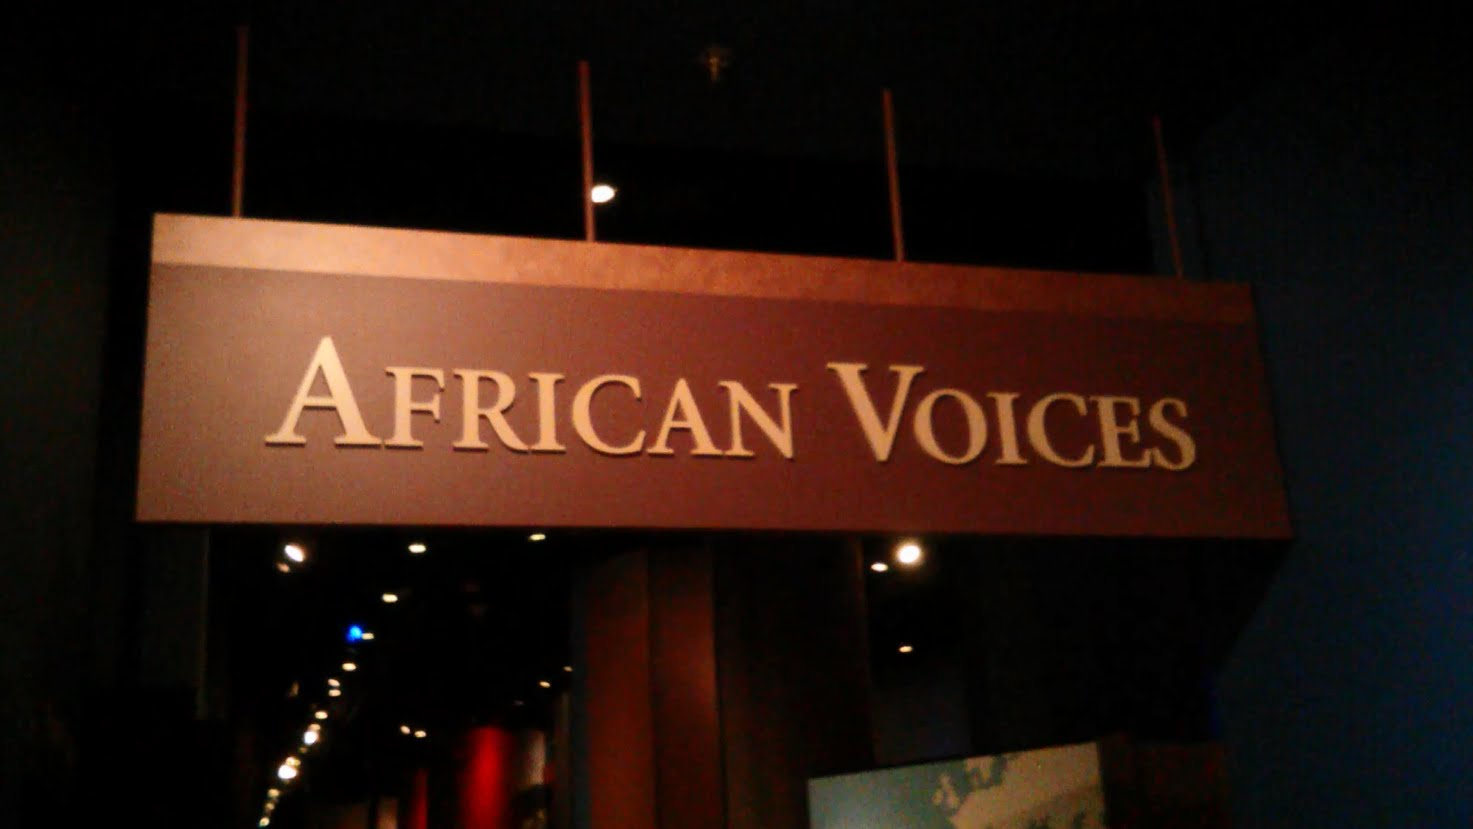 African Voices exhibit, National Museum of Natural History